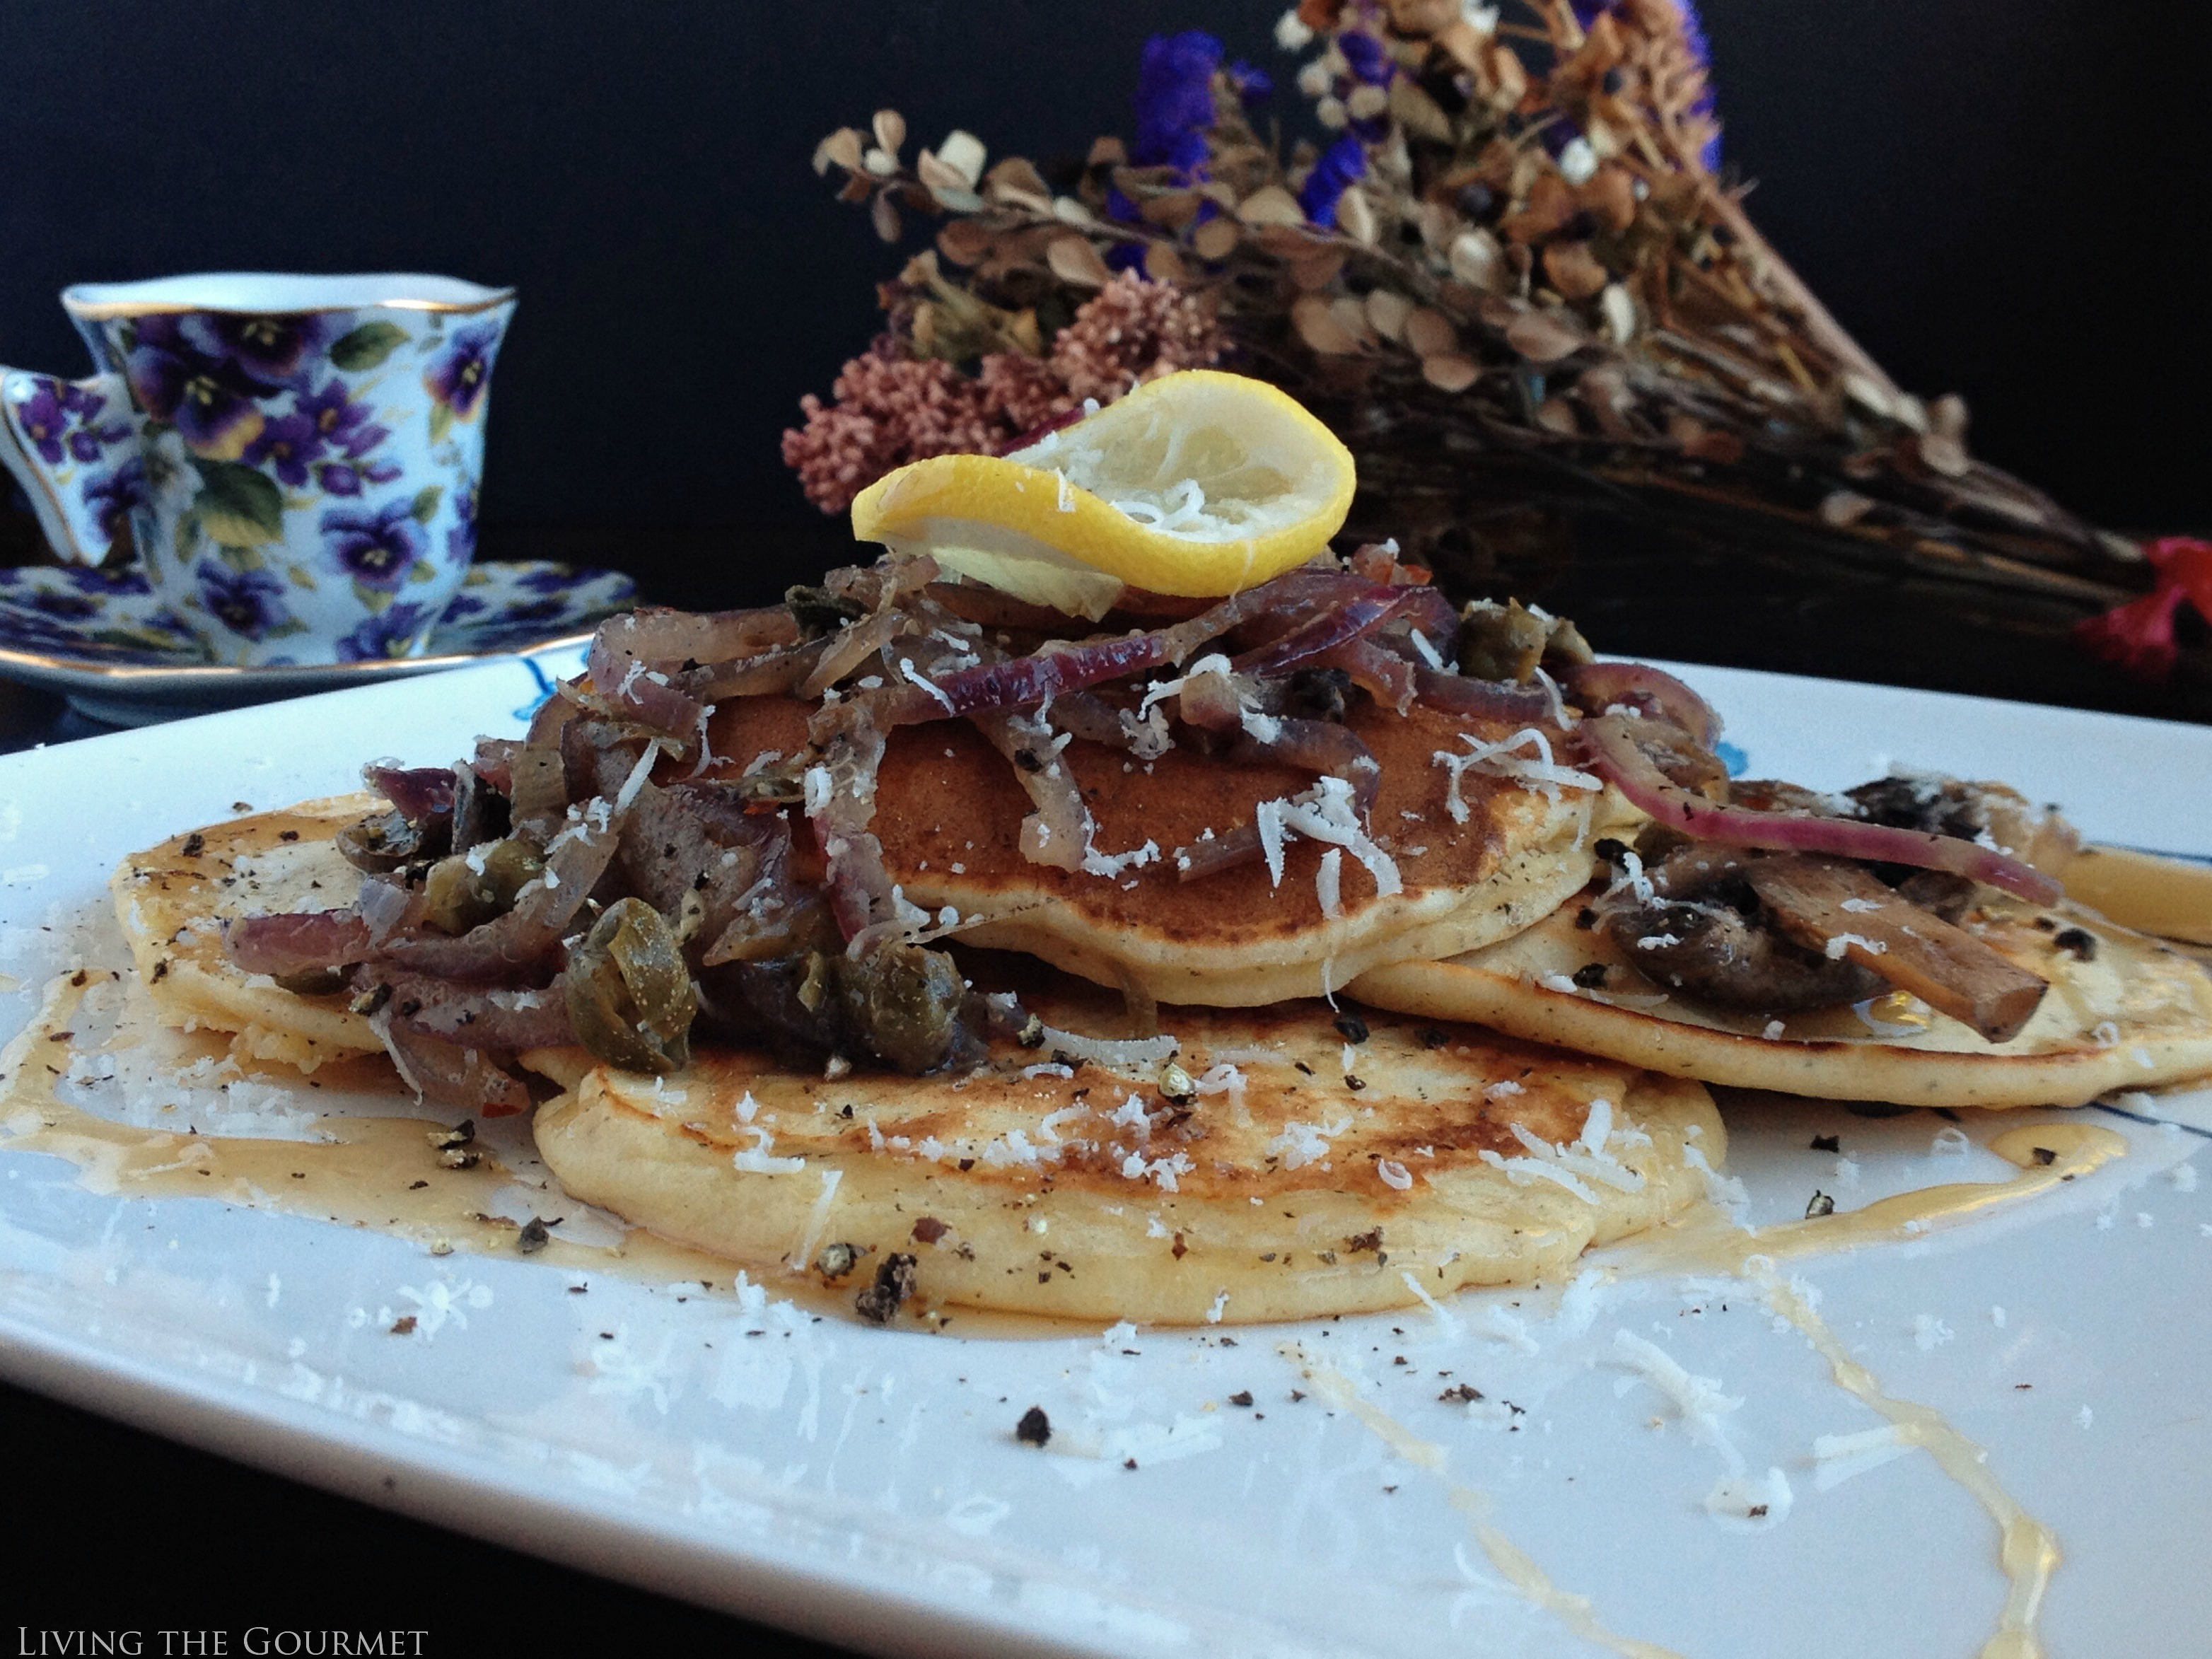 Polenta Pancakes and Sauteed Mushrooms with Caramelized Onions